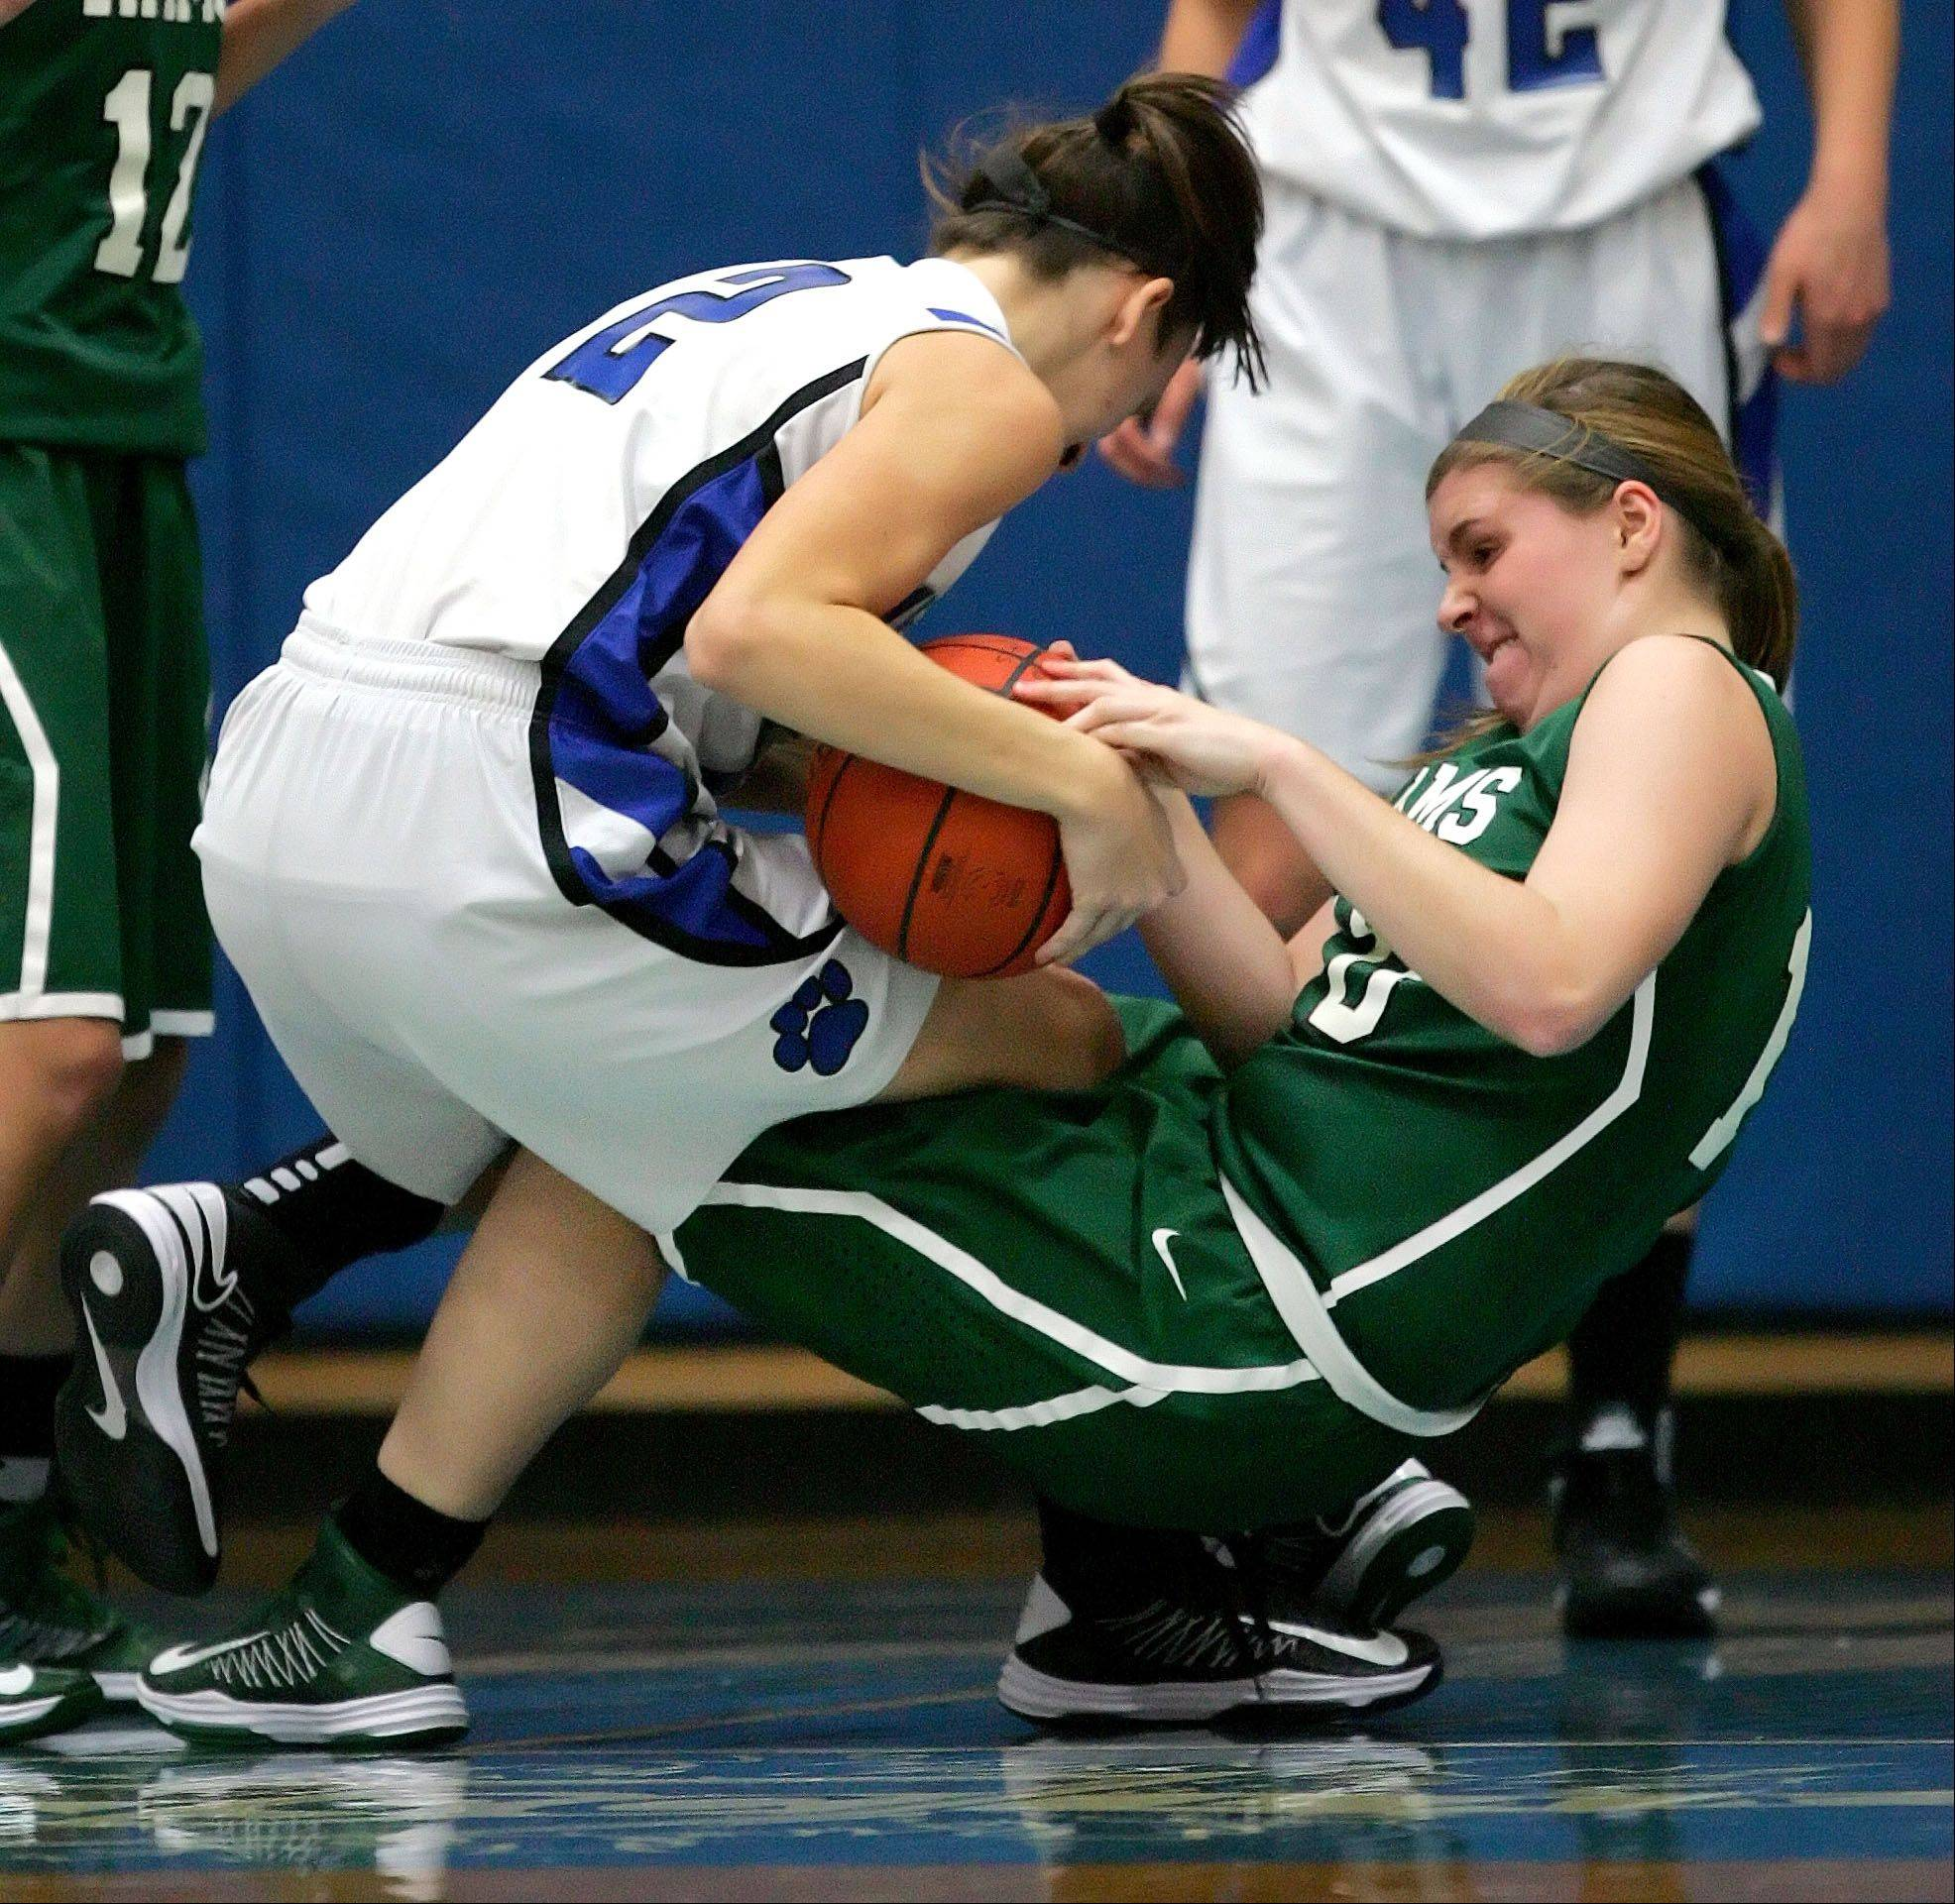 Images: Grayslake Central vs. Vernon Hills girls basketball